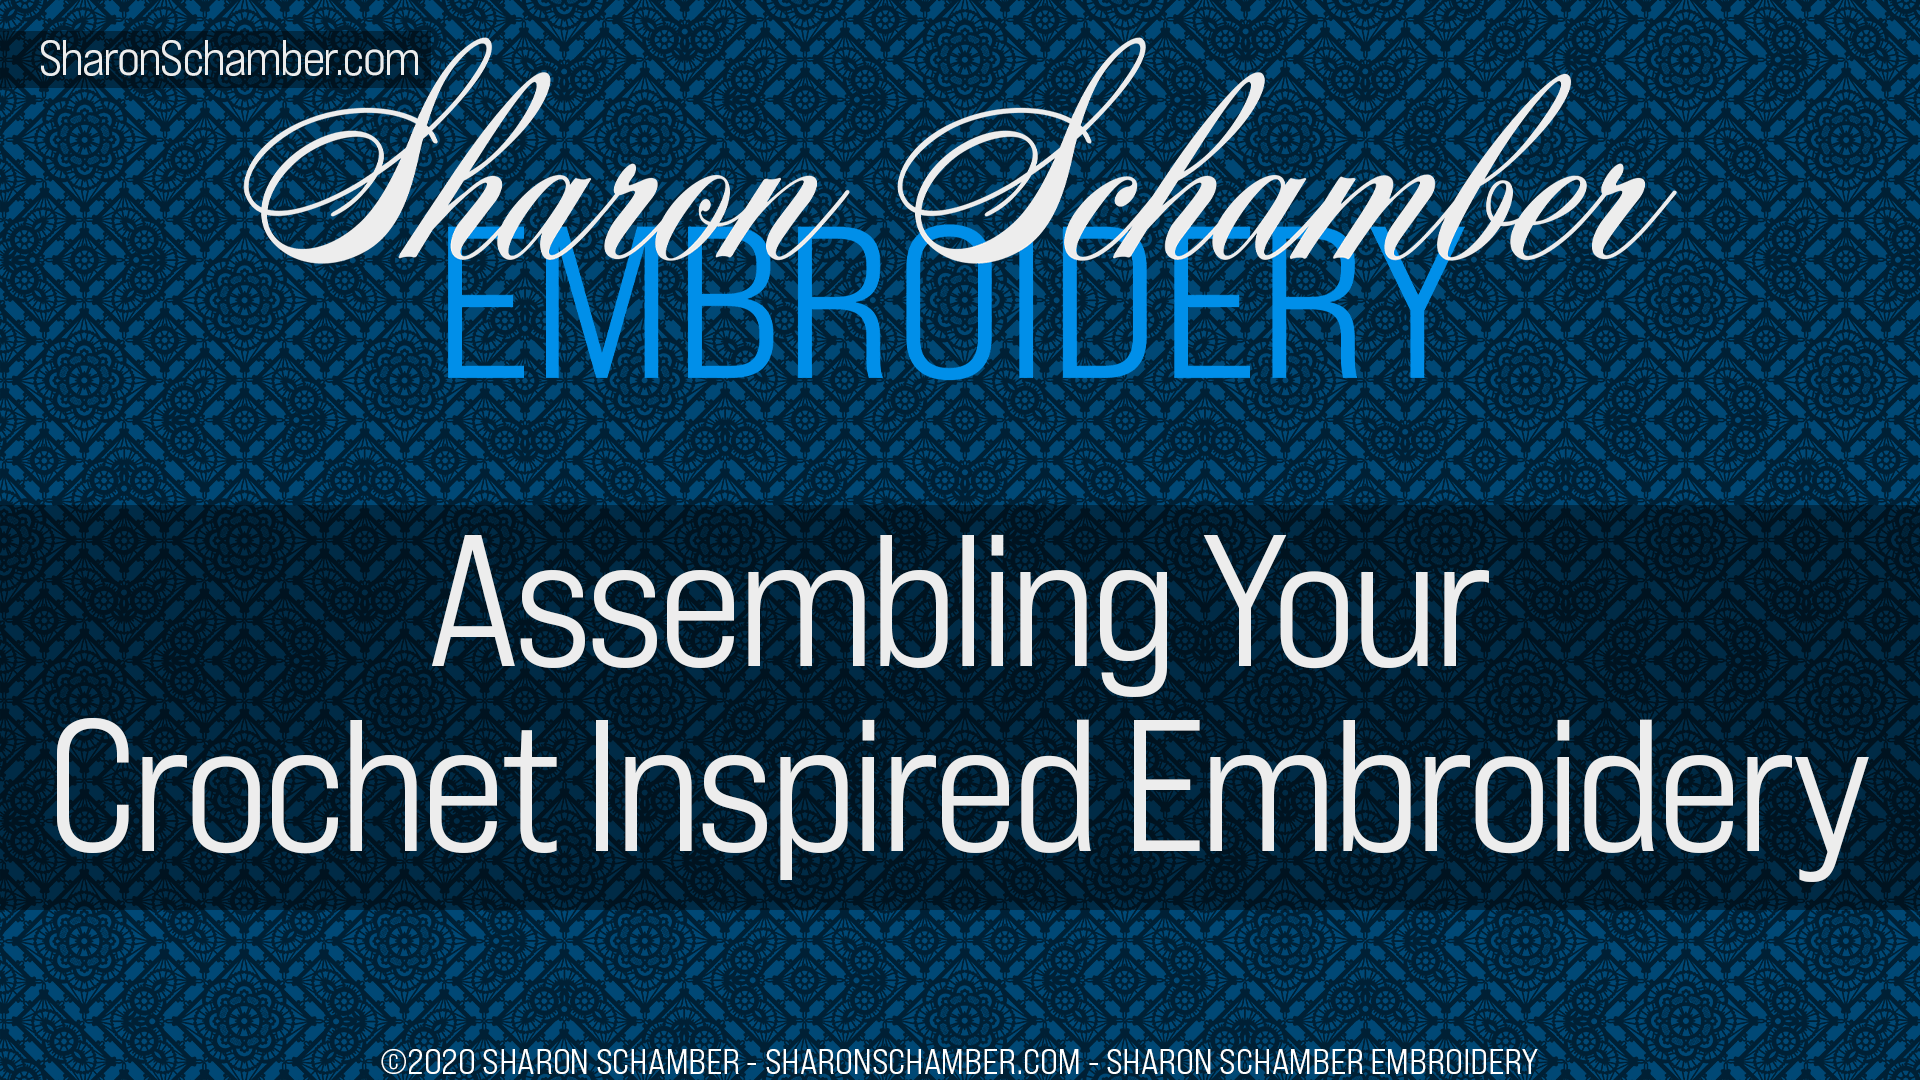 Washing Your Crochet Inspired Embroidery